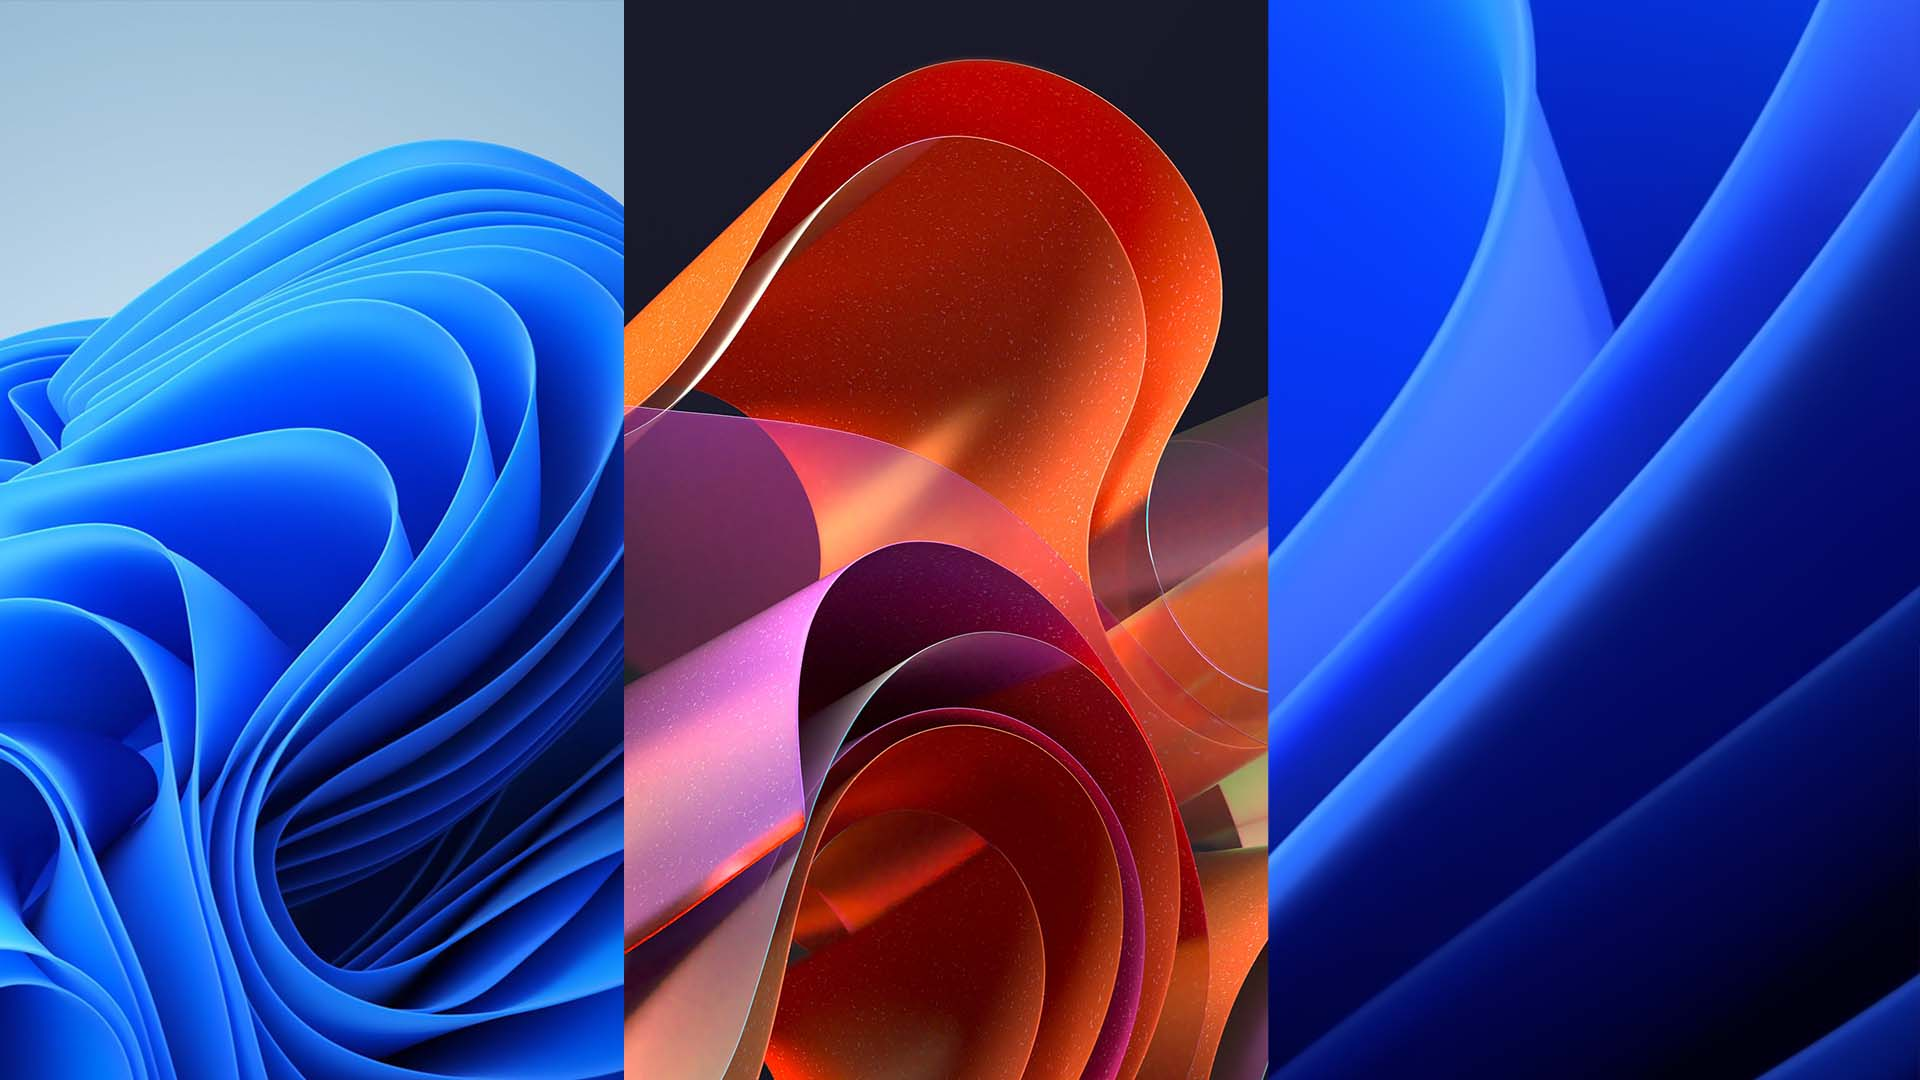 The Windows 11 Wallpapers Are AWESOME Download All 32 of Them 1920x1080